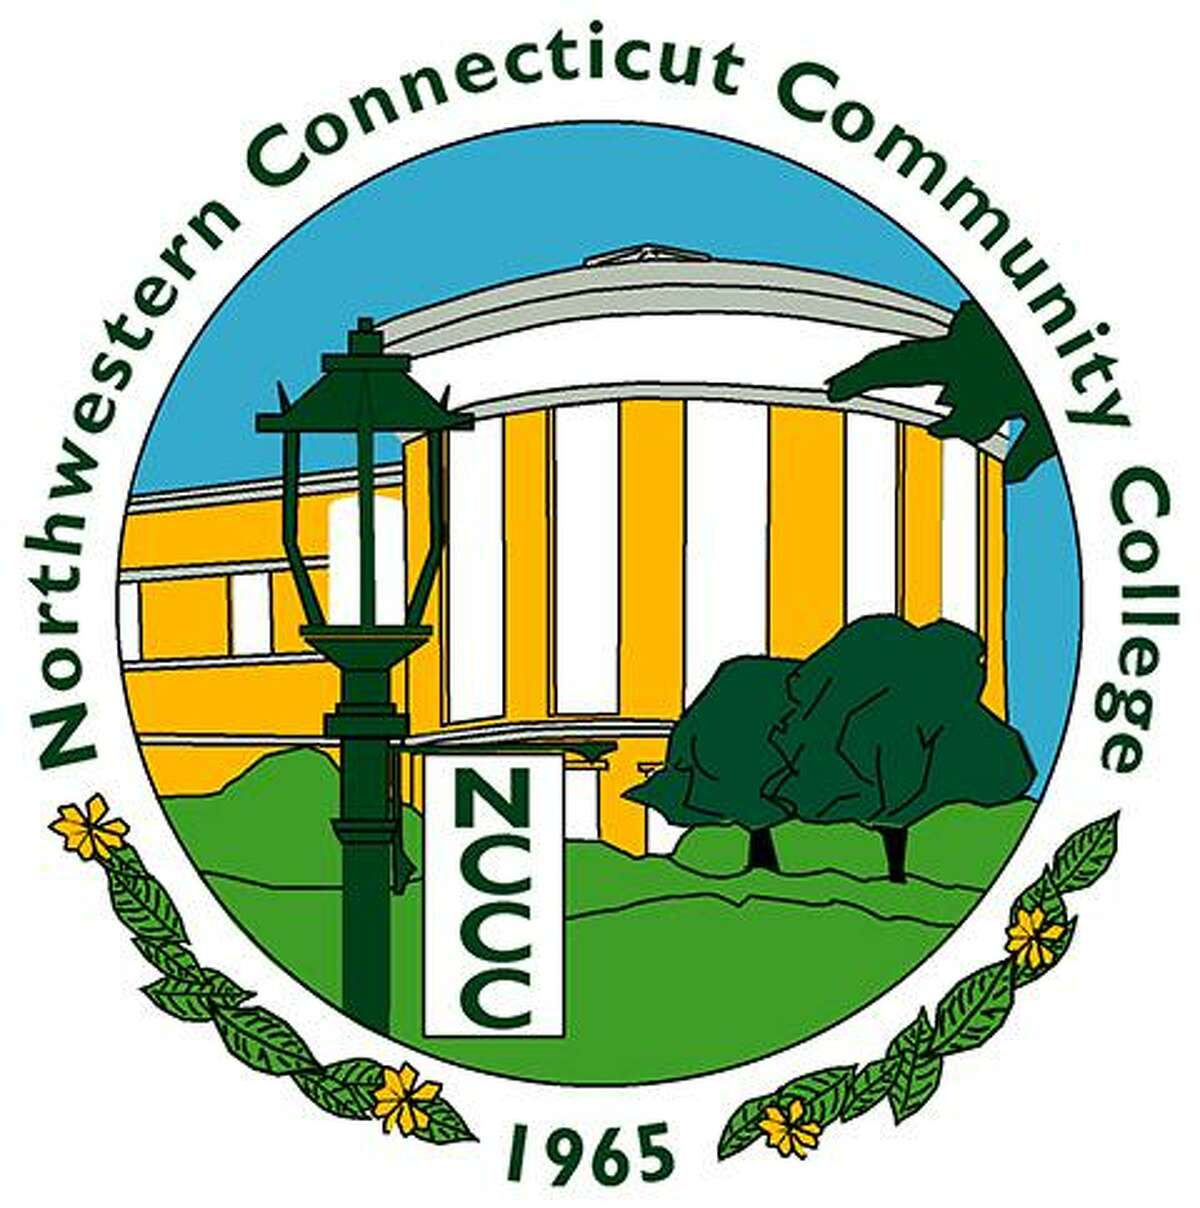 Northwest Connecticut Community College in Winsted recently launched a new data science degree program.